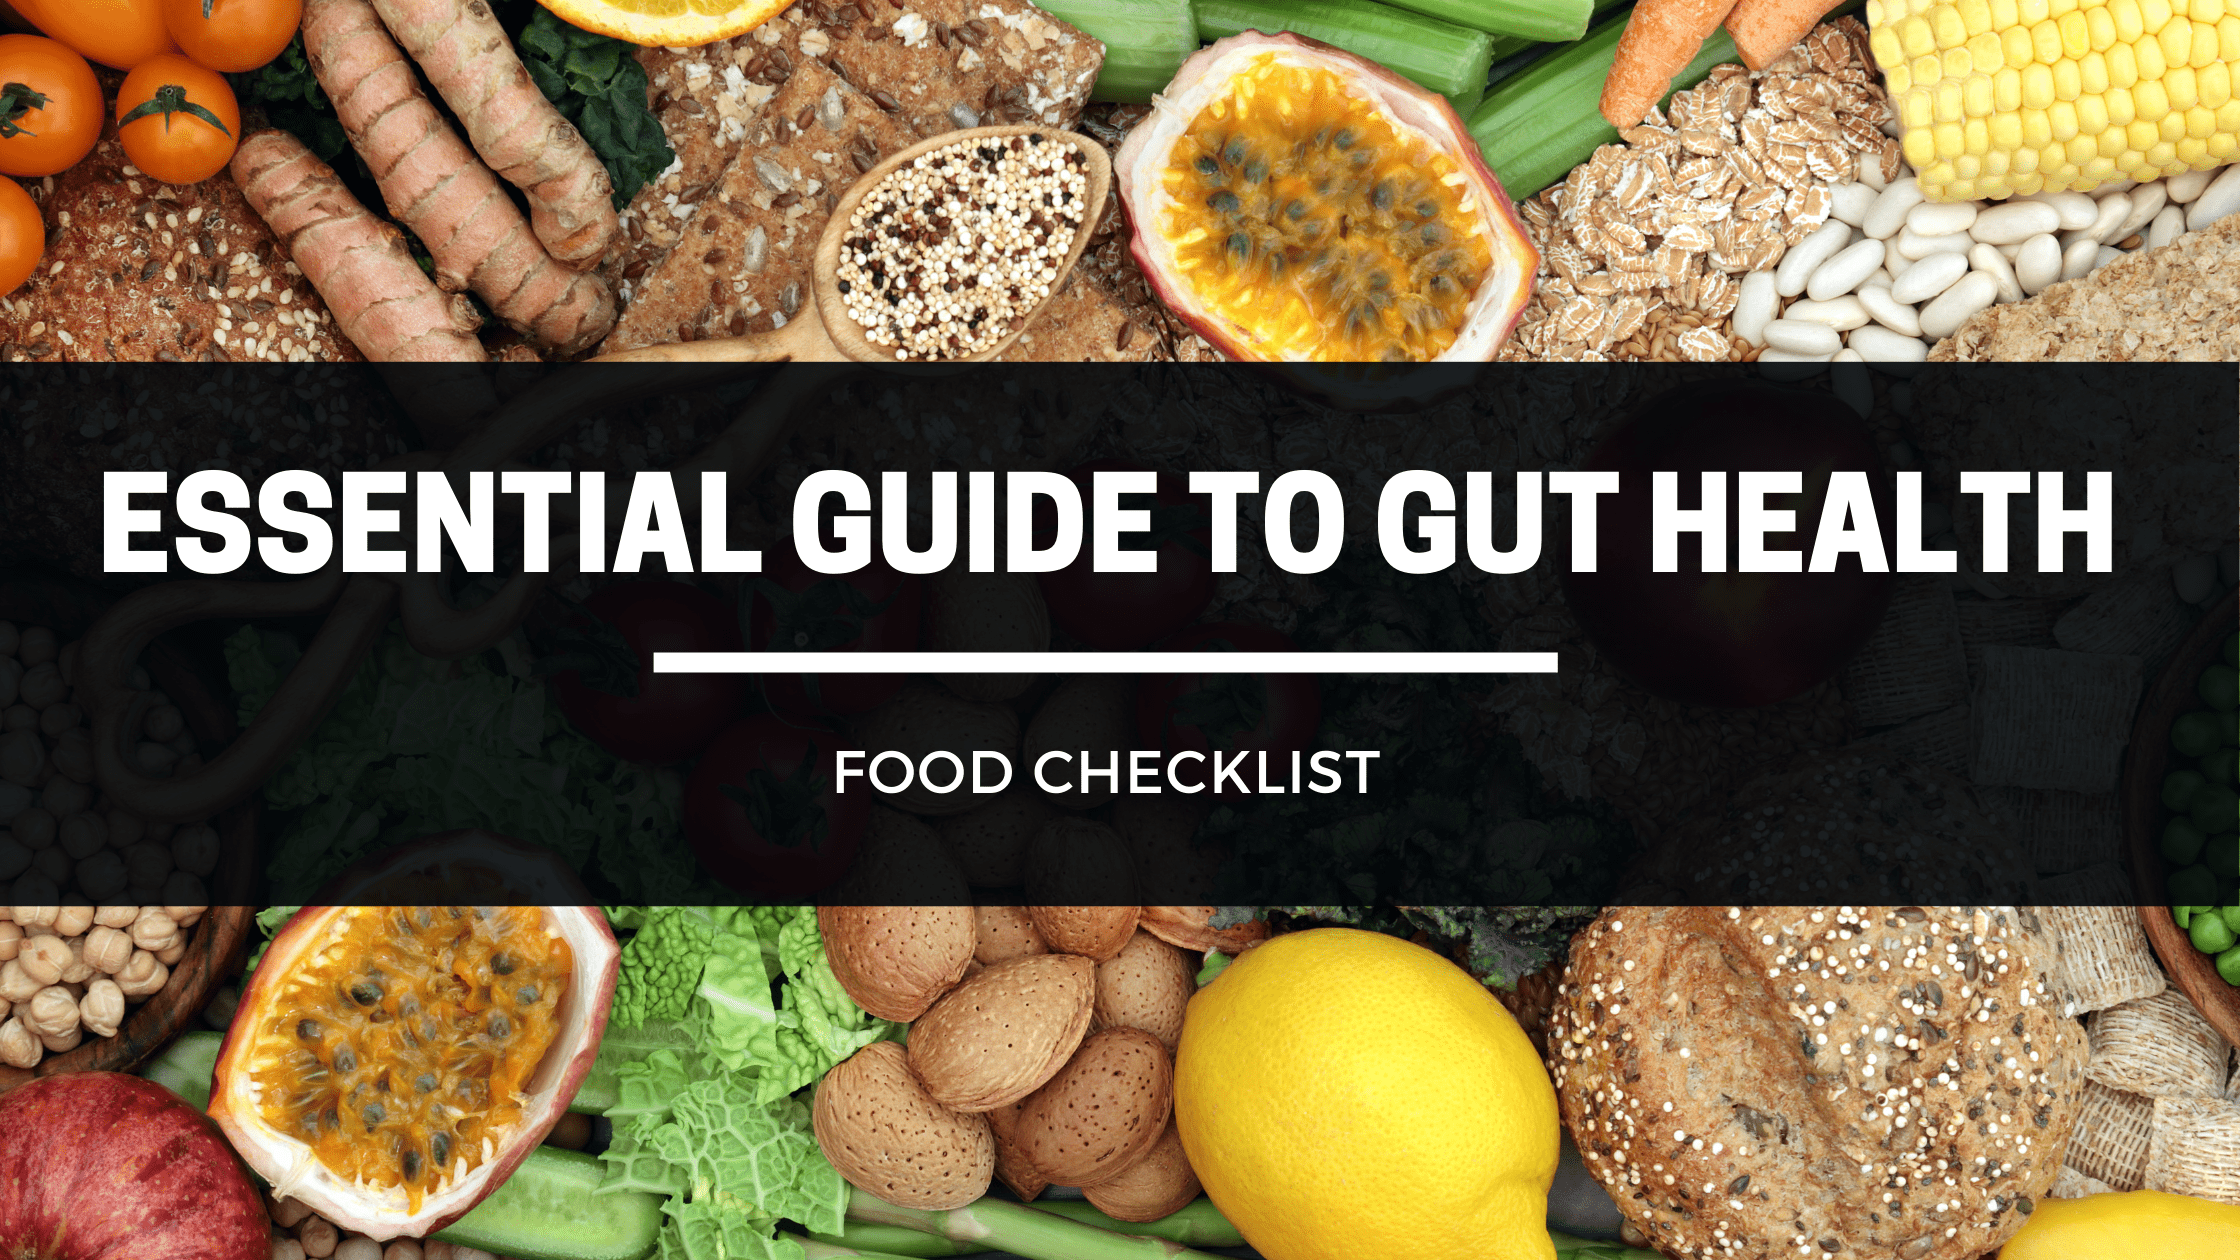 An Essential Guide To Gut Health - Food Checklist